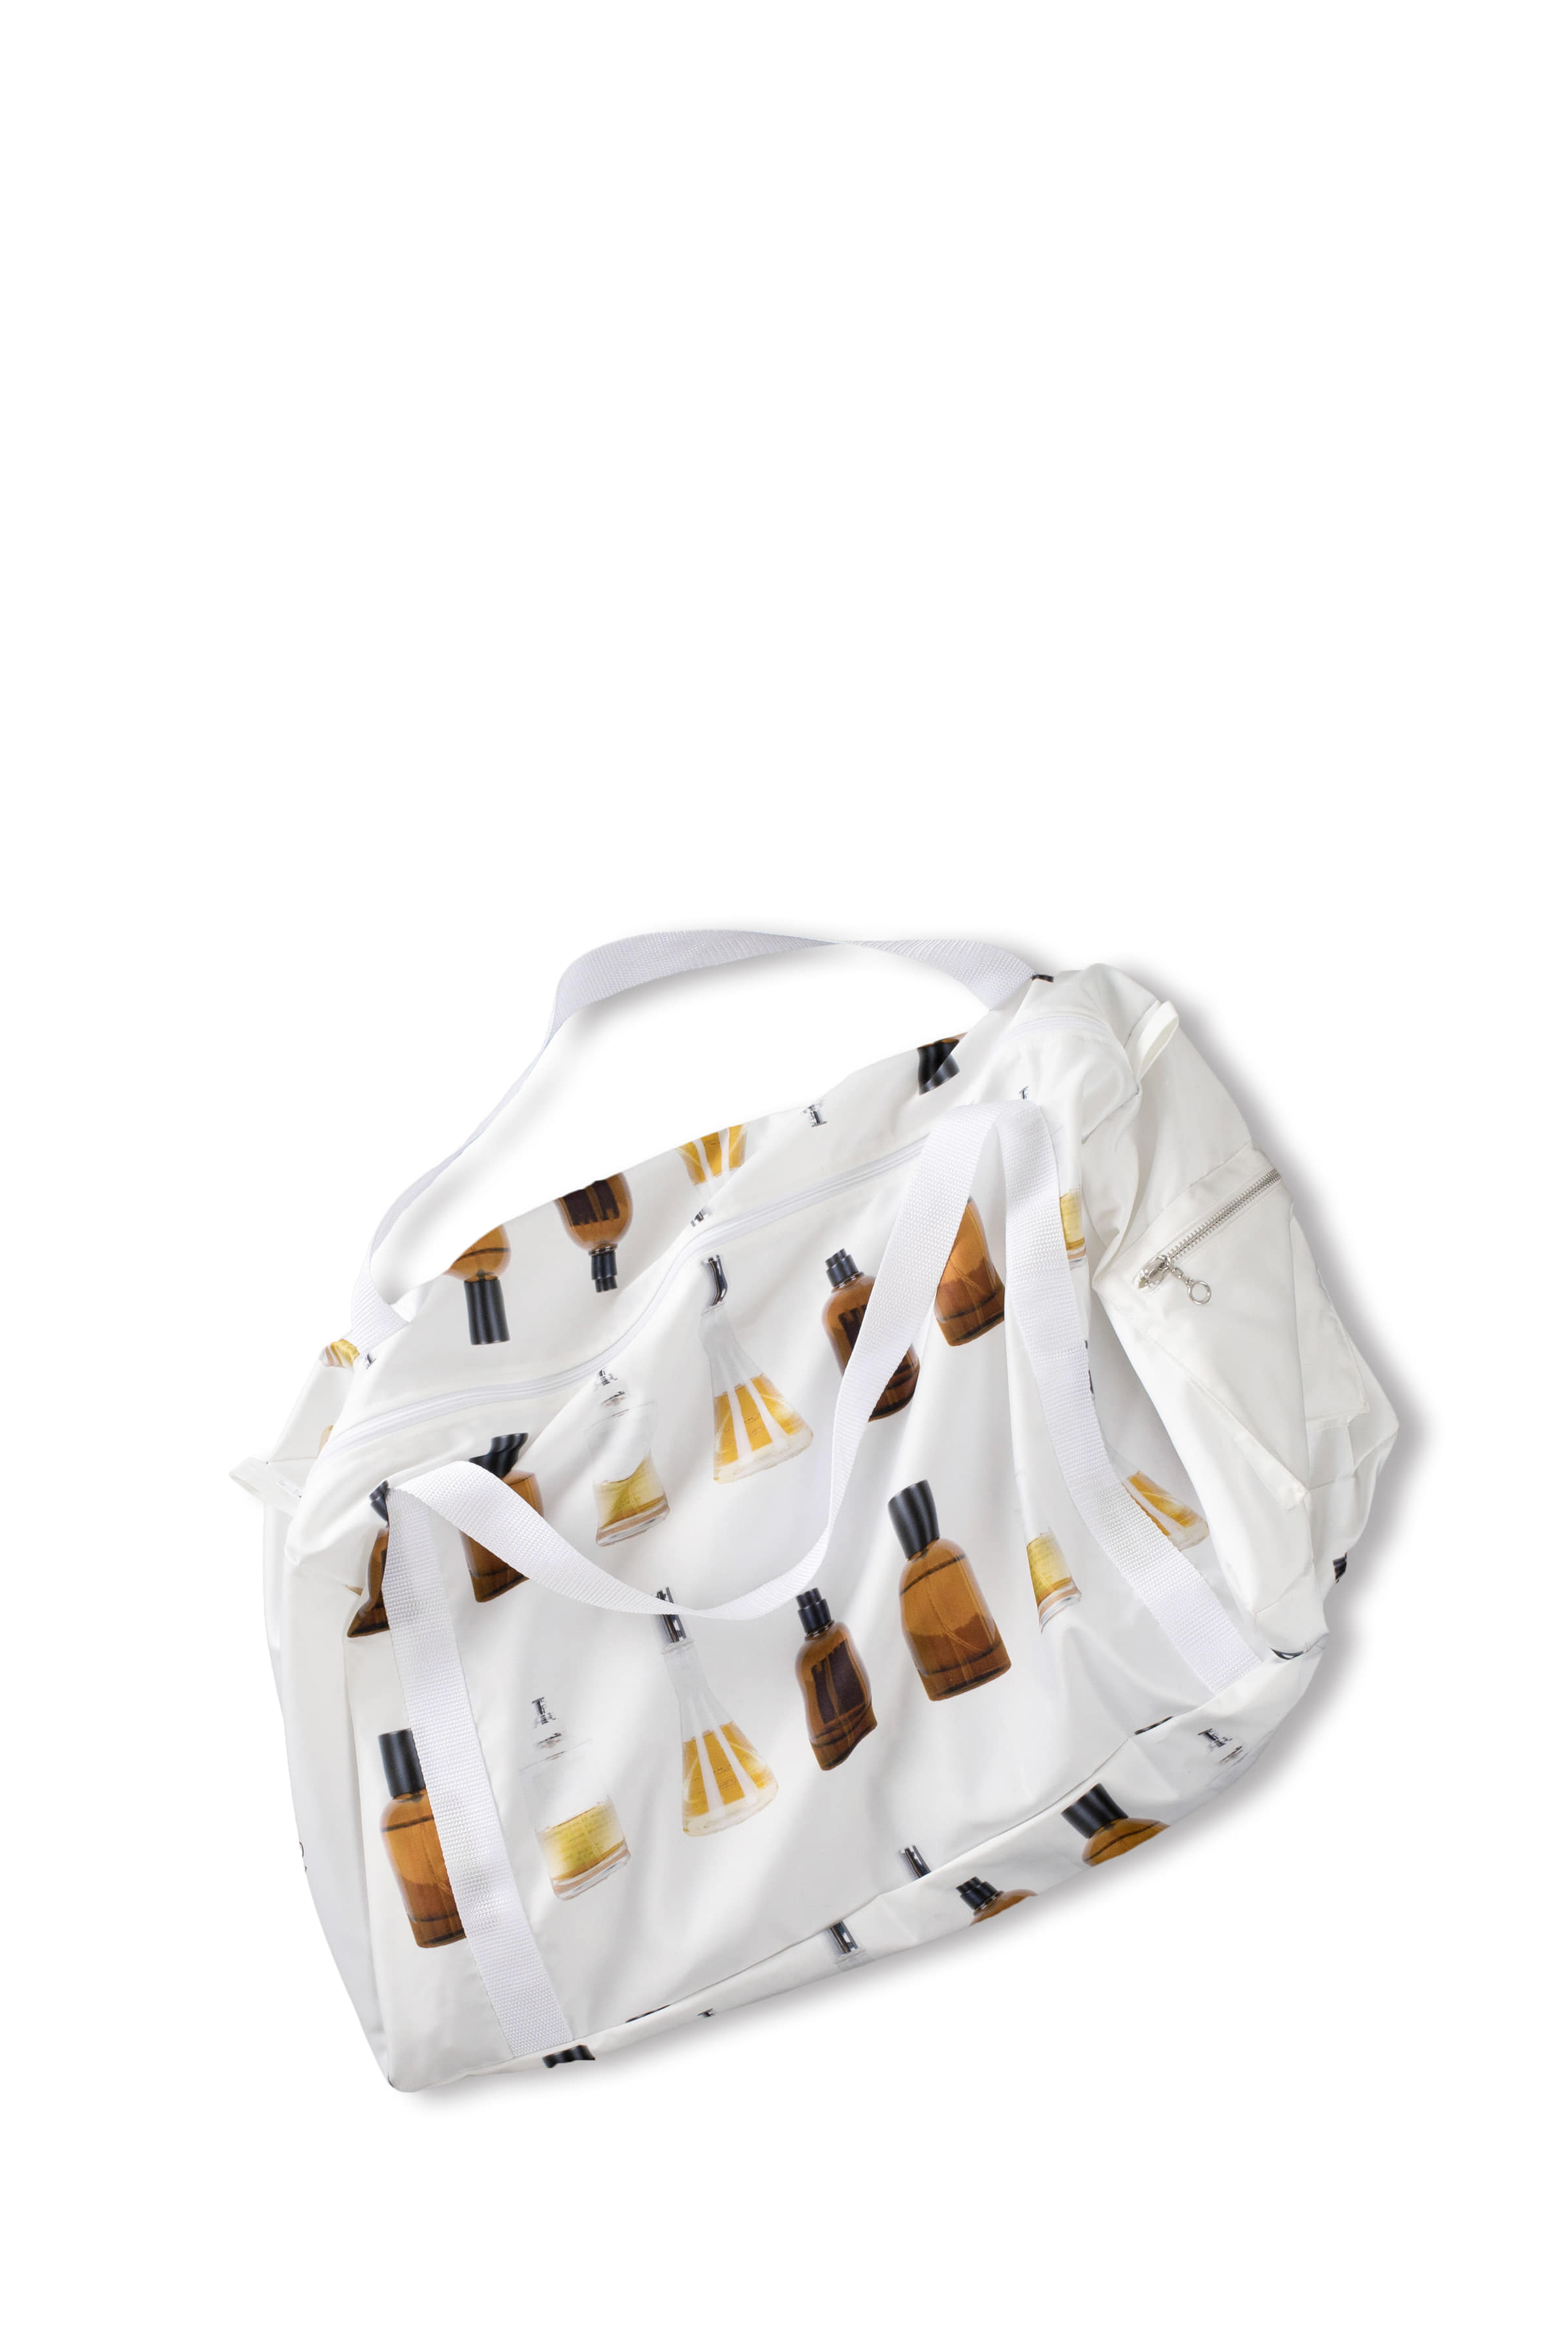 THE MUSEUM VISITOR : Graphic Tote Bag (White)